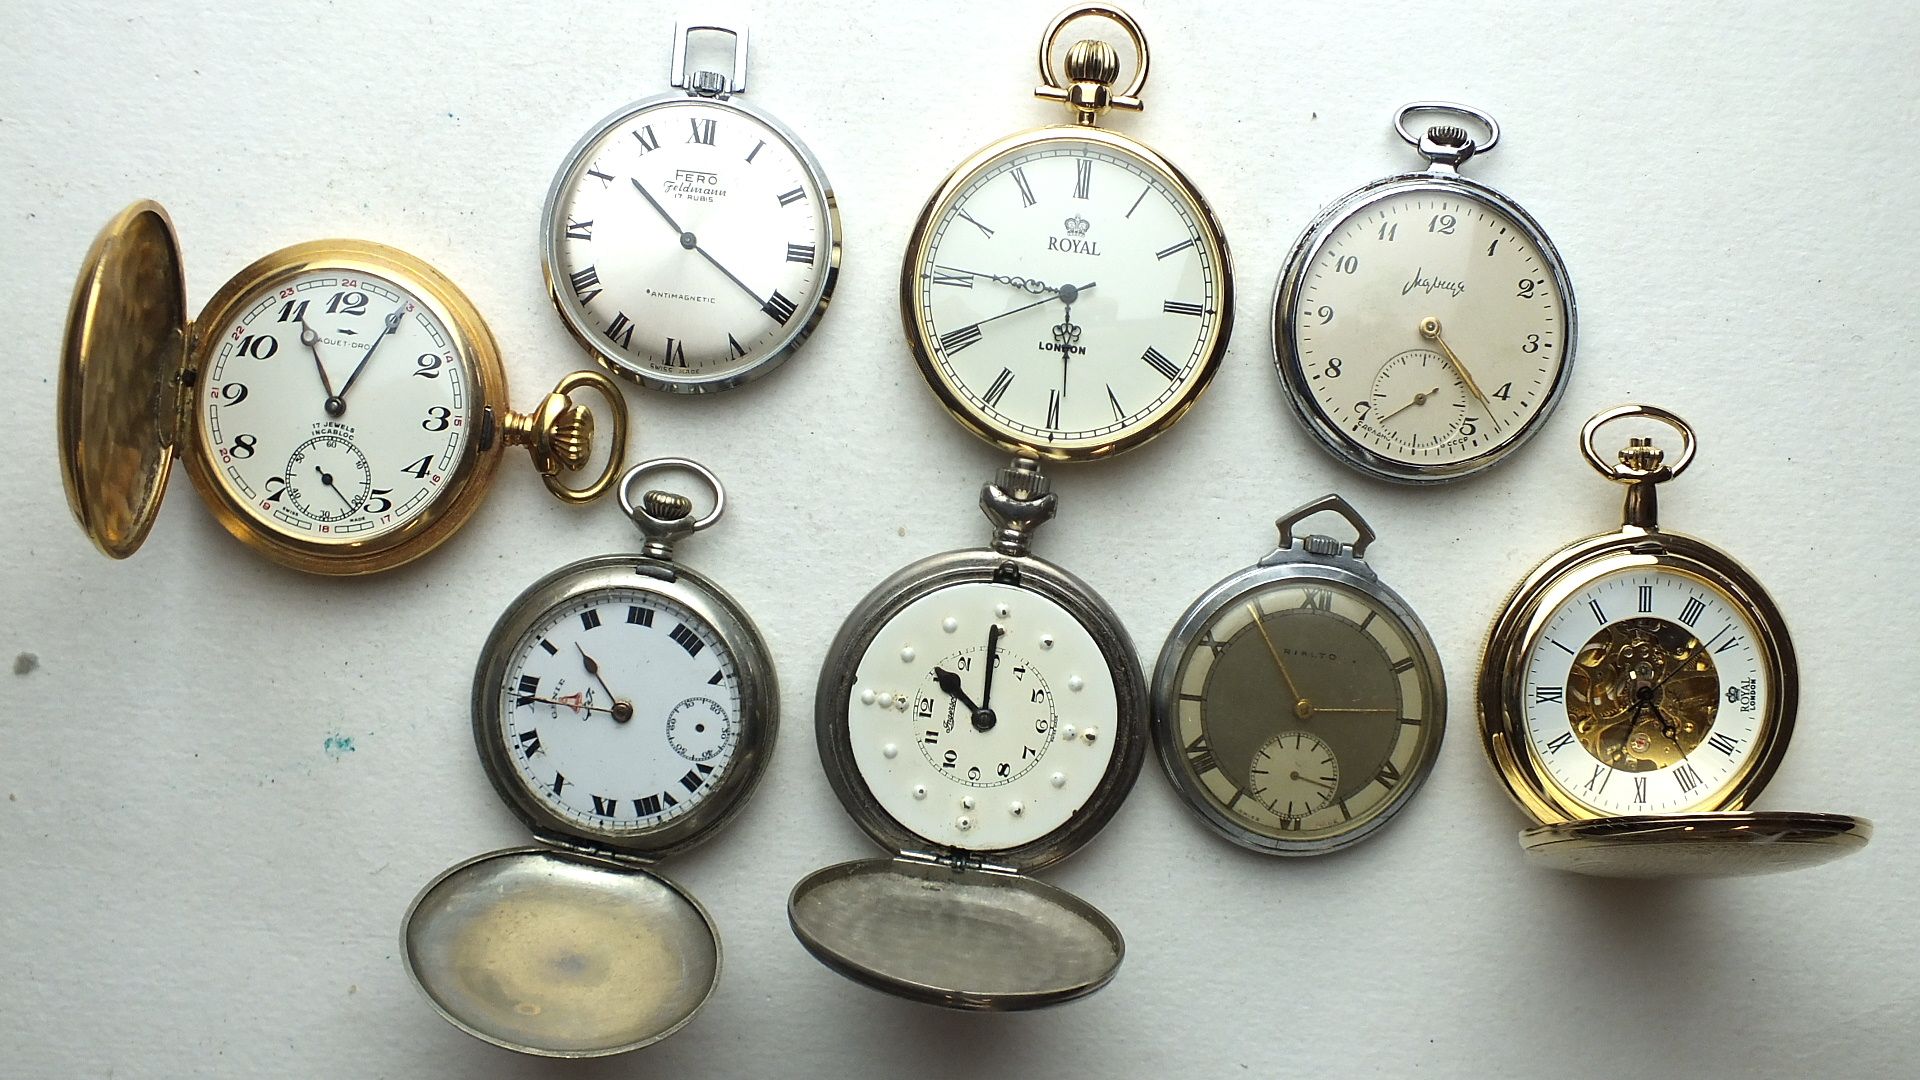 Lot 250 - Eight 20th century pocket watches, including Rialto, Fero-Feldmann and a hunter-cased Braille watch,